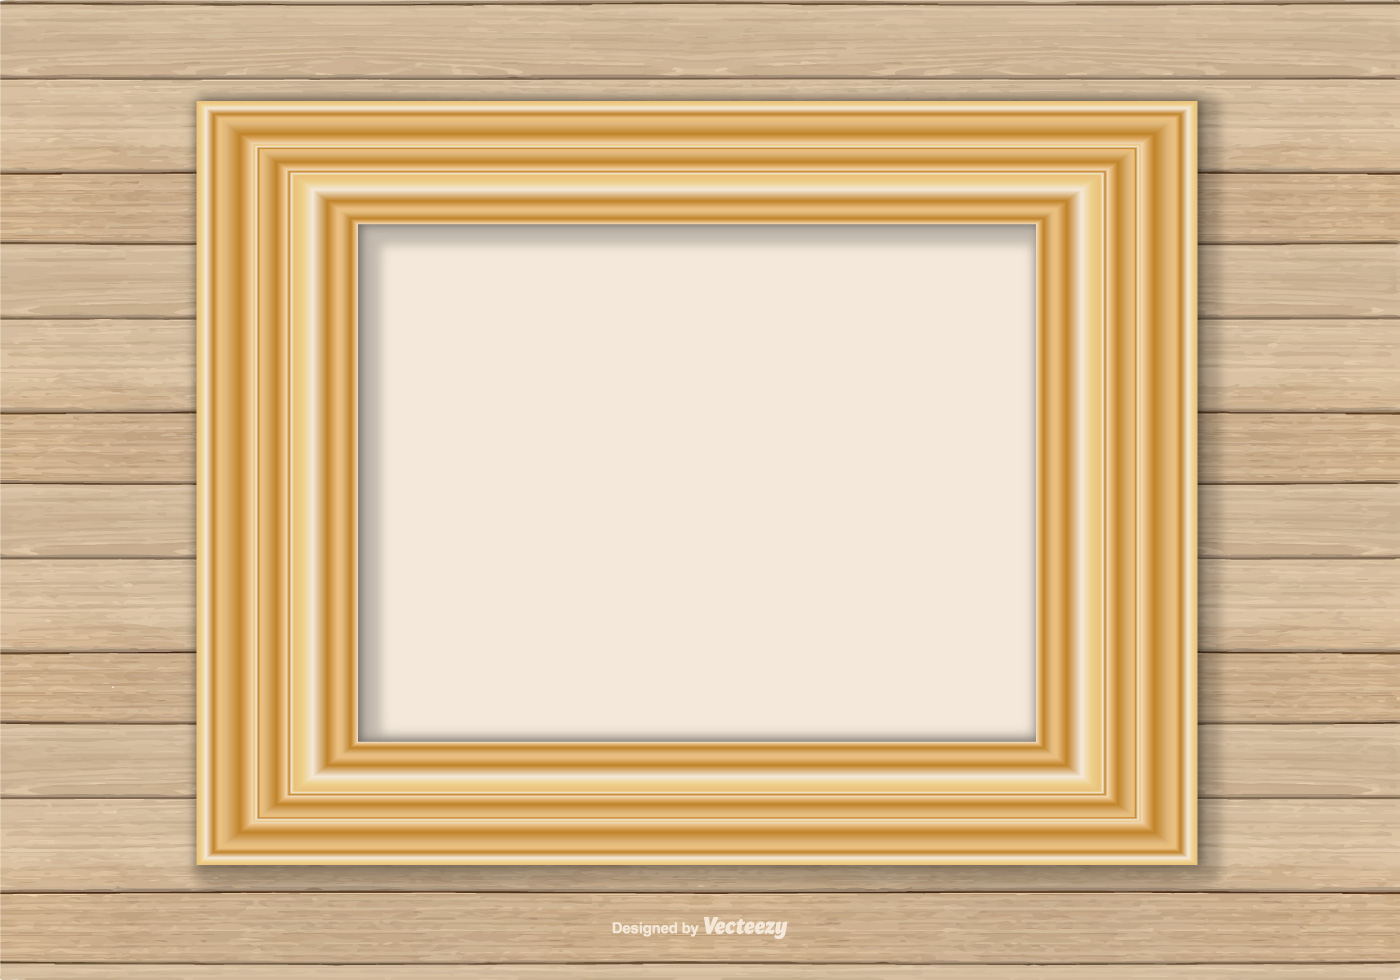 Gold Frame On Wood Wall Background - Download Free Vector Art, Stock ...